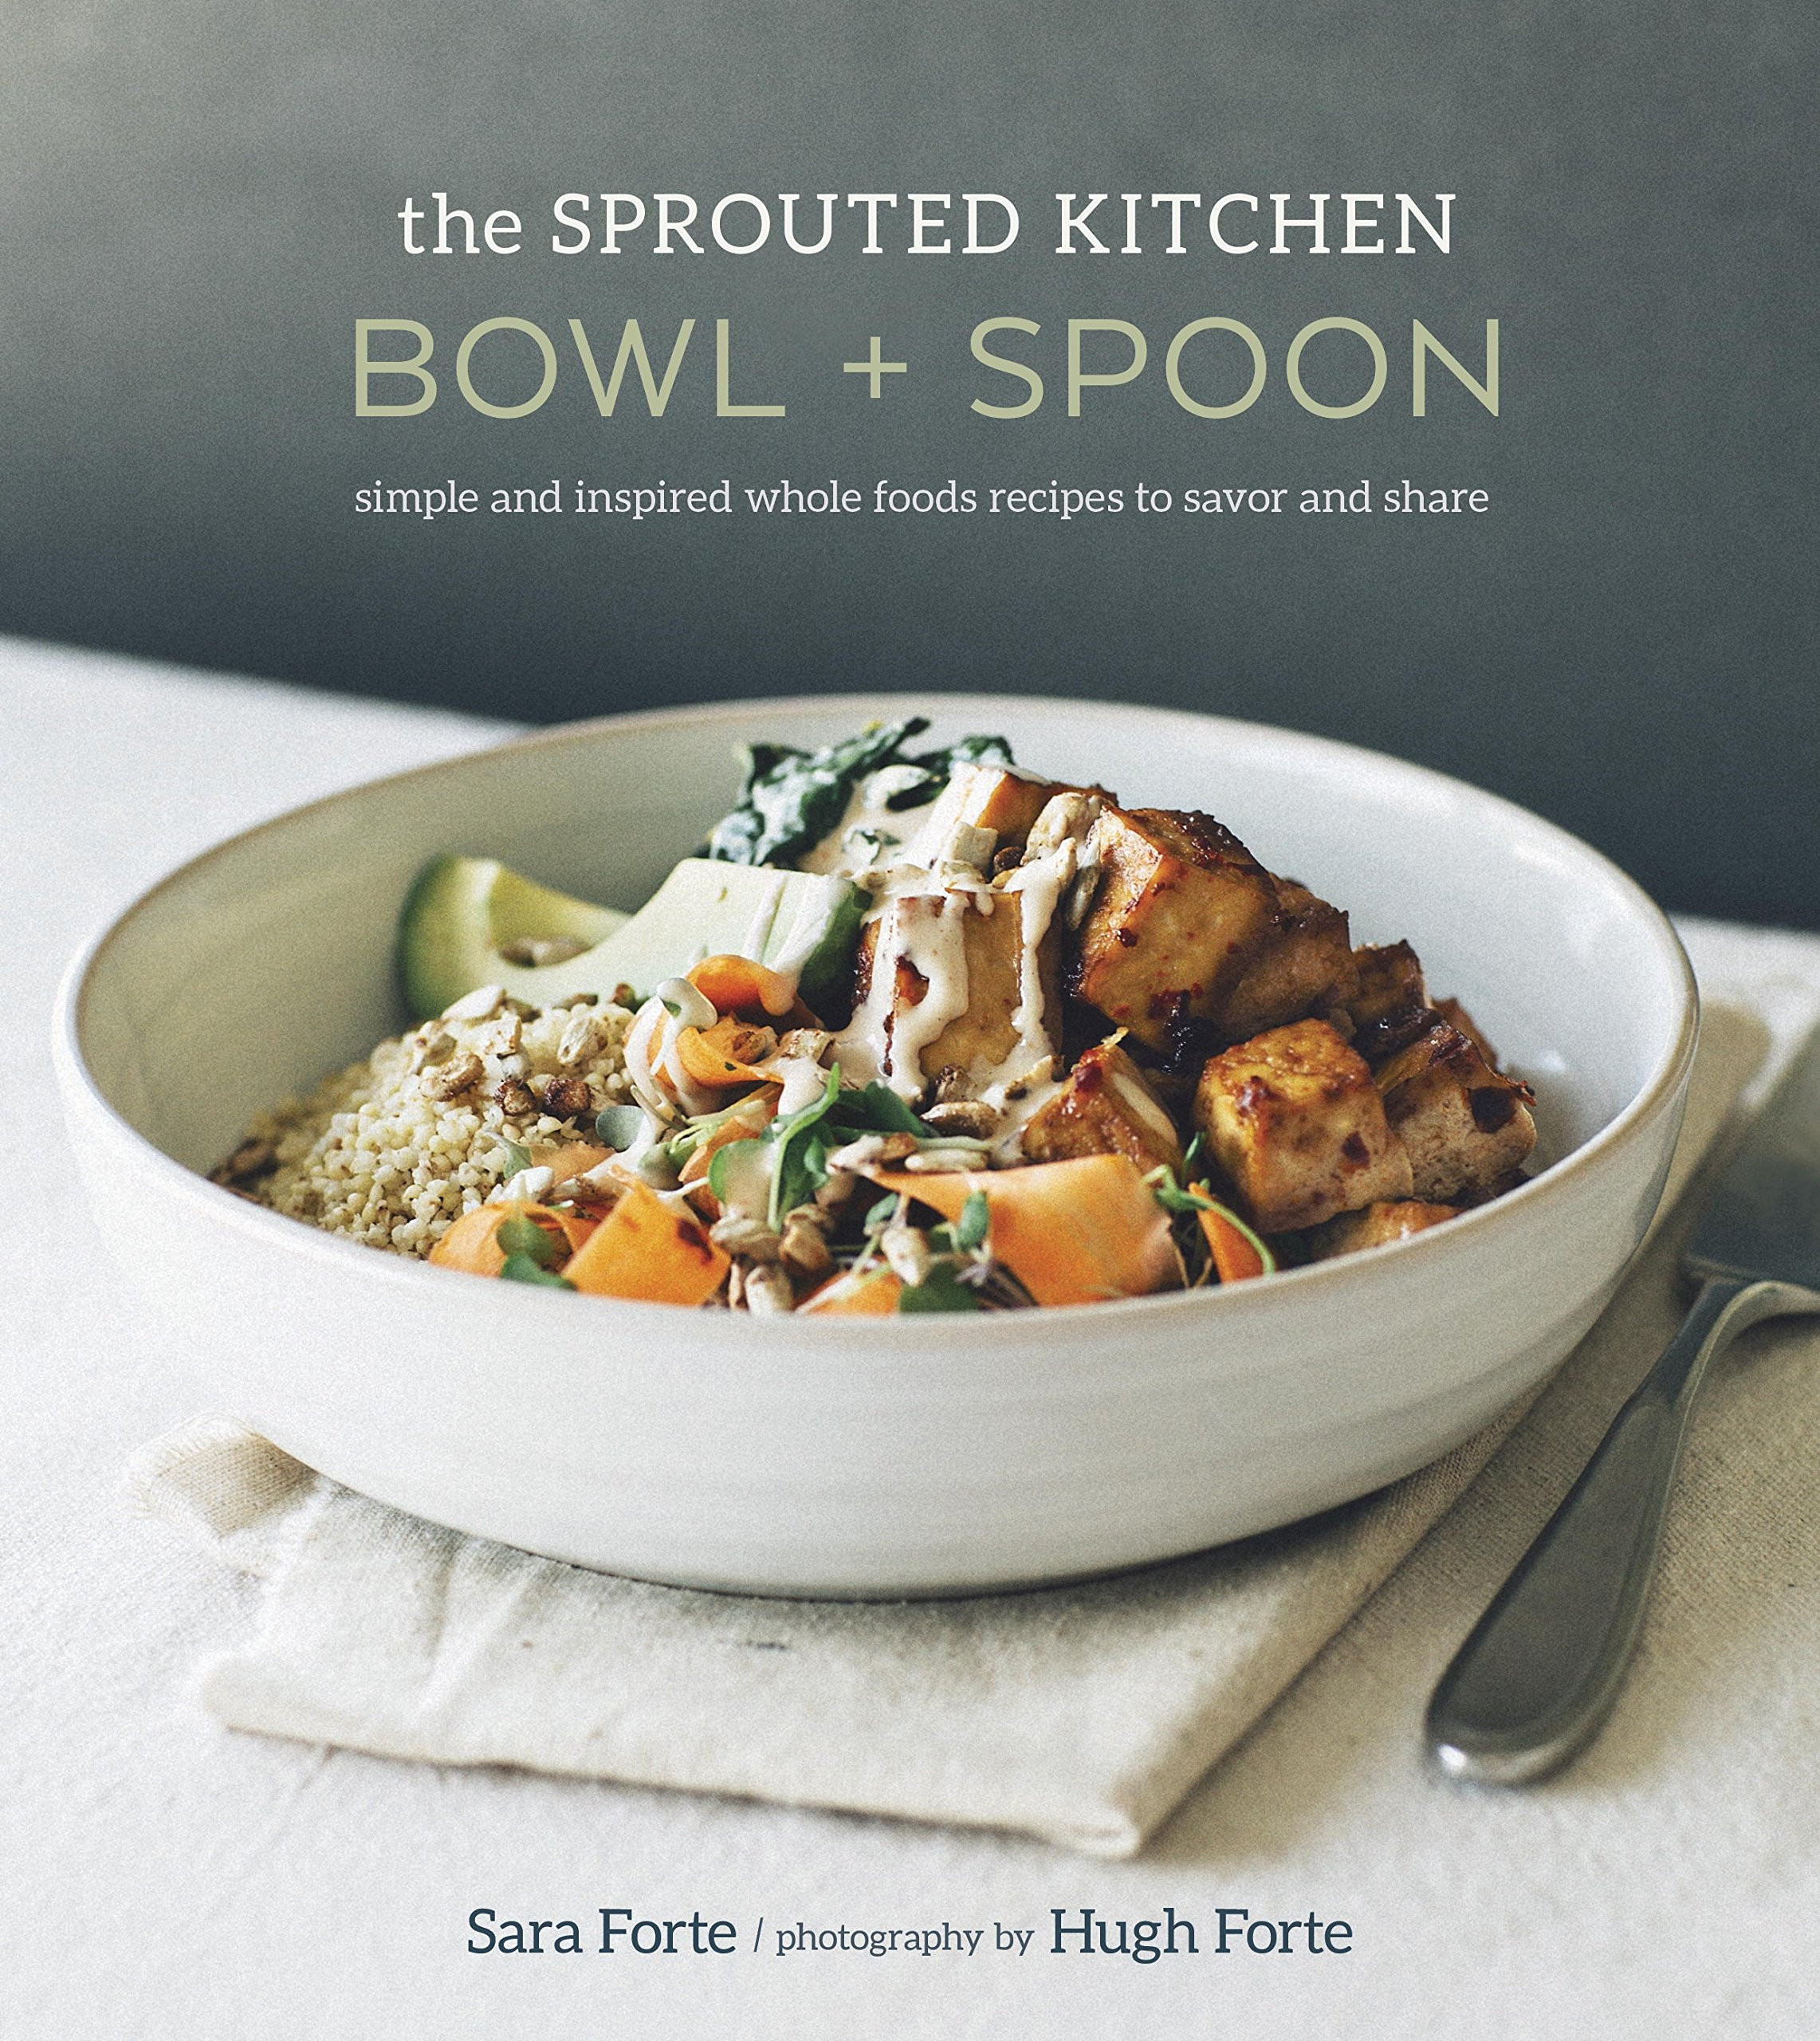 The sprouted kitchen bowl and spoon simple and inspired whole the sprouted kitchen bowl and spoon simple and inspired whole foods recipes to savor and share sara forte hugh forte 9781607746553 amazon books forumfinder Image collections